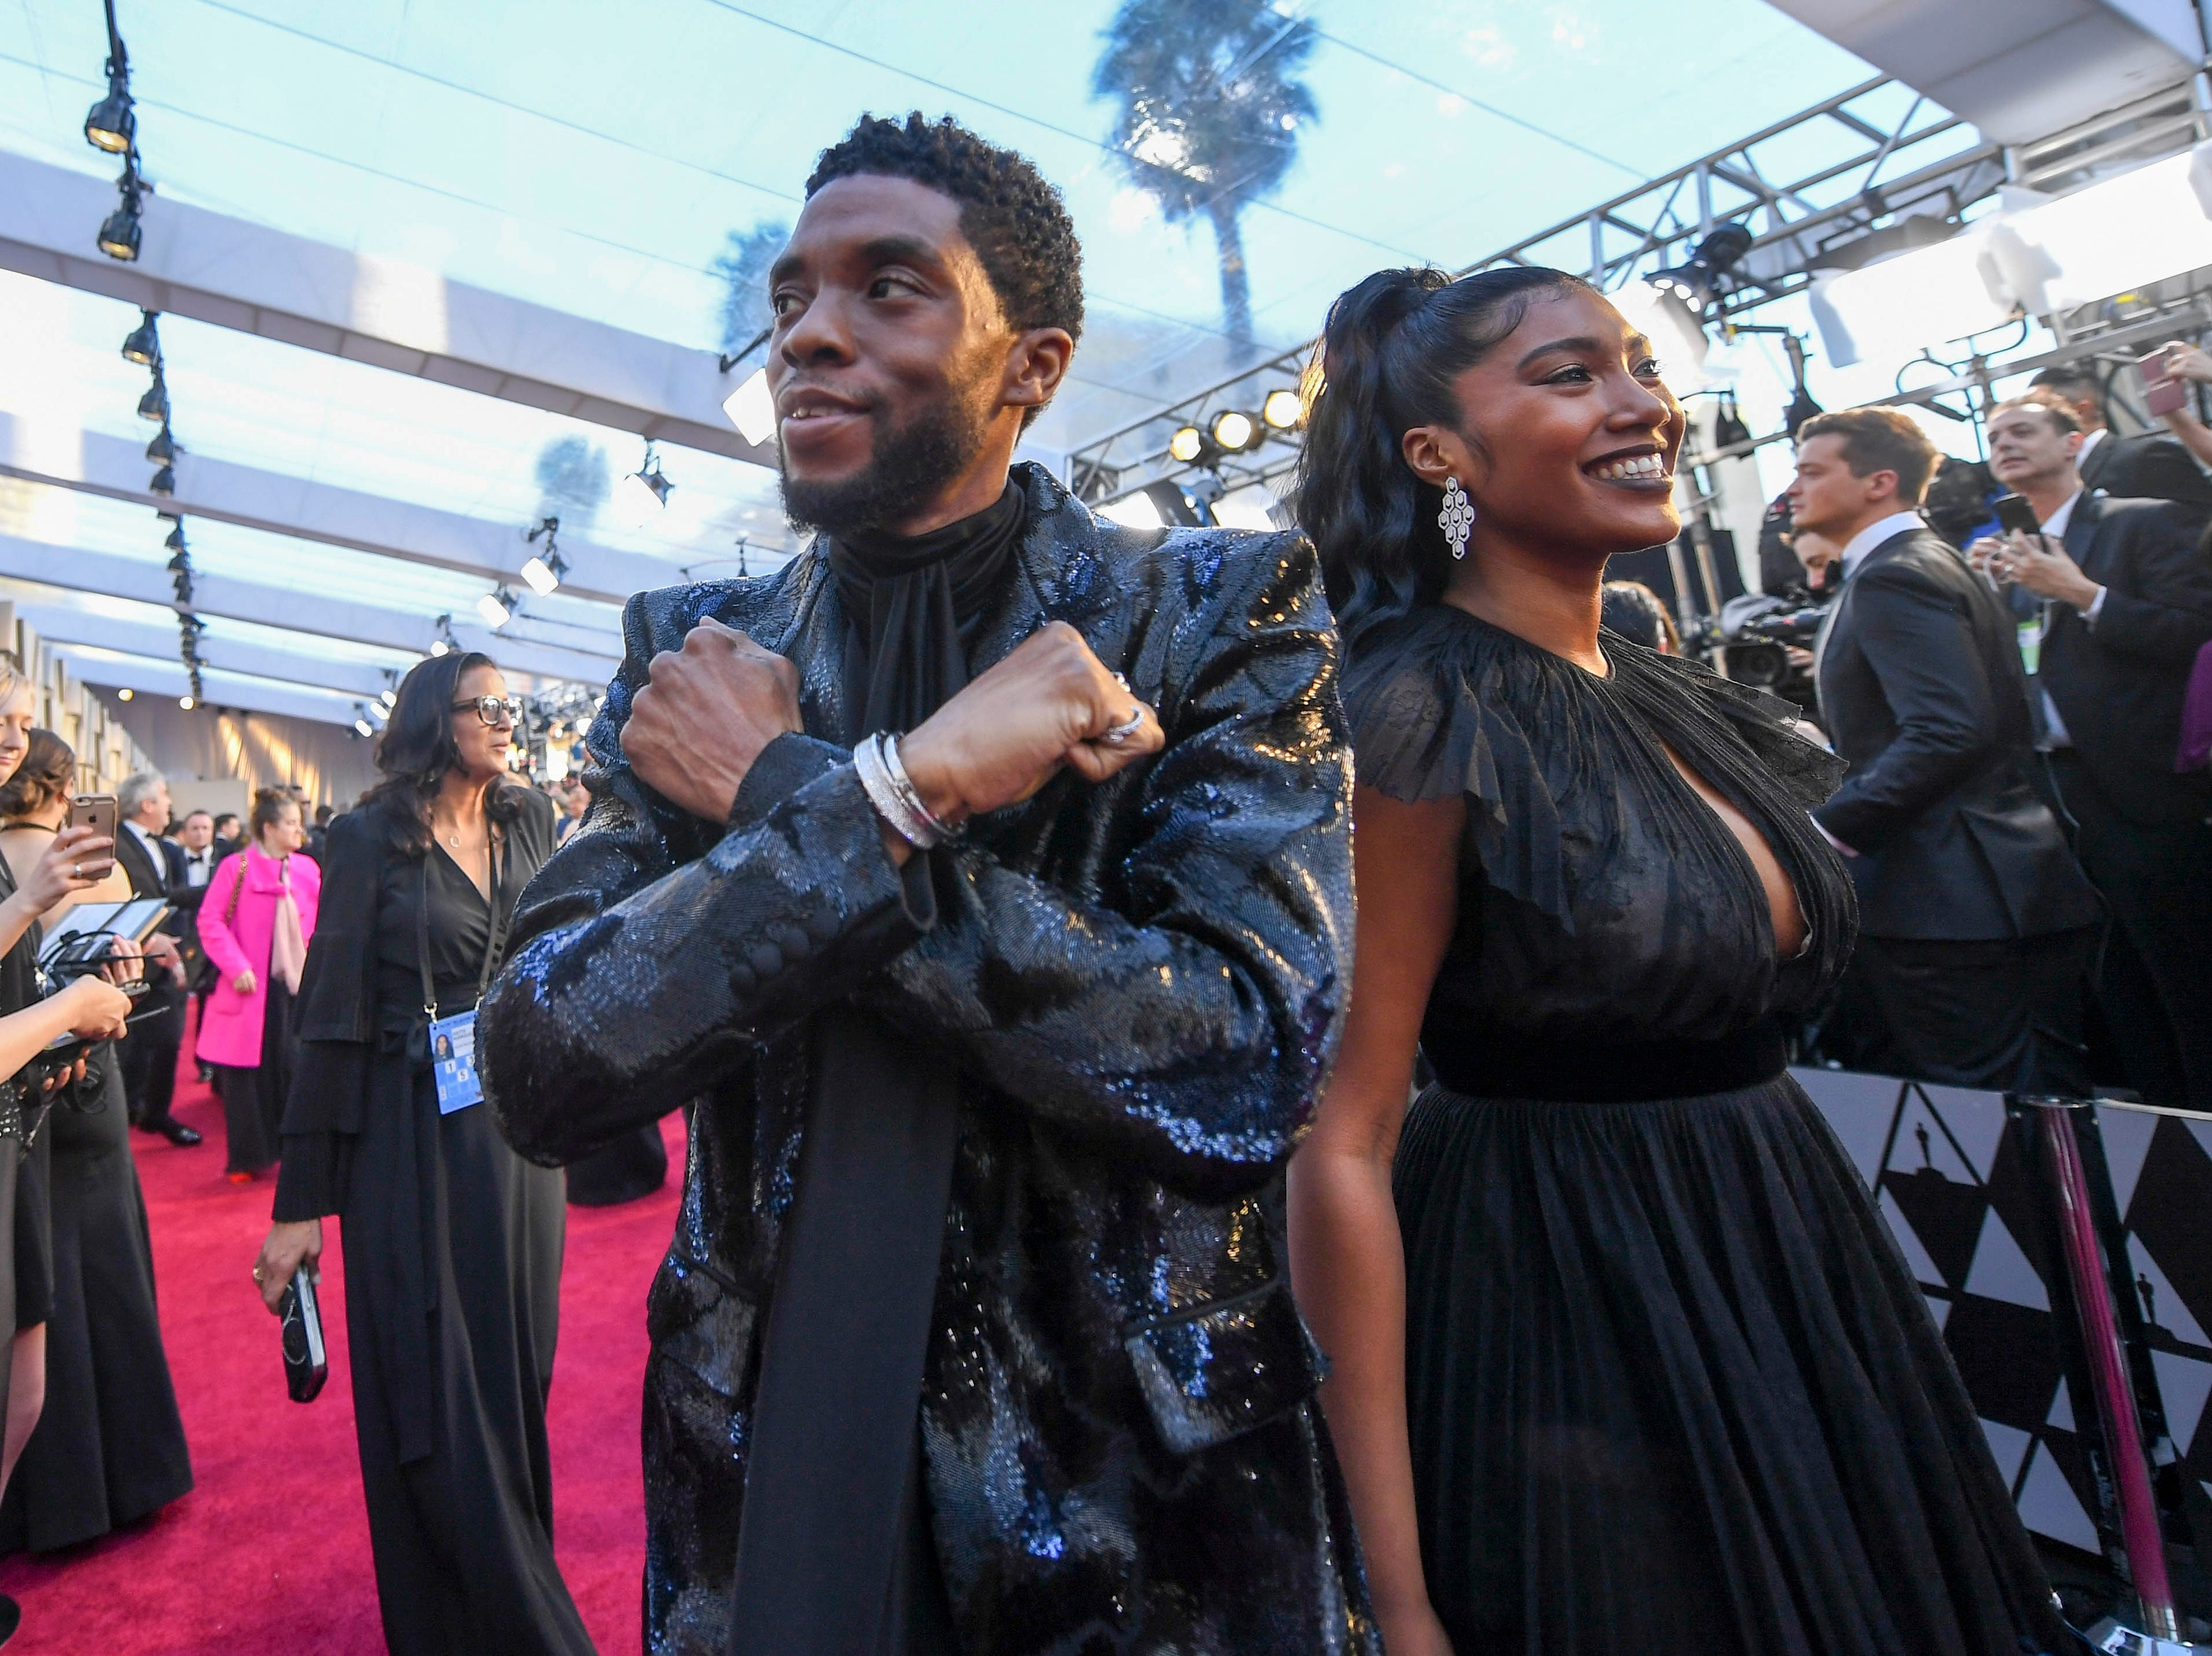 February 24, 2019; Los Angeles, CA, USA; Chadwick Boseman arrives at the 91st Academy Awards at the Dolby Theatre. Mandatory Credit: Robert Hanashiro-USA TODAY NETWORK (Via OlyDrop)